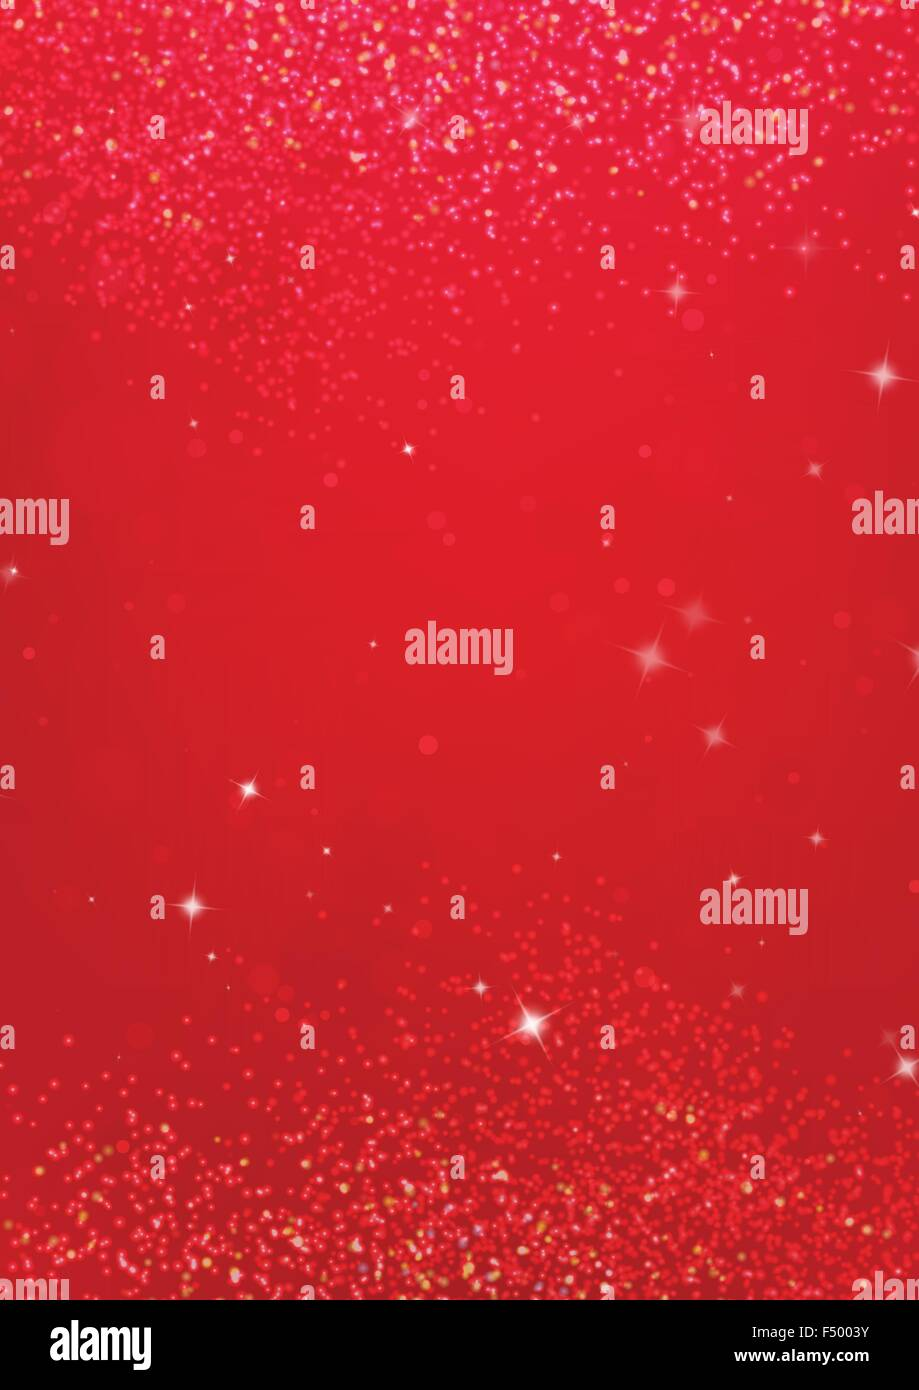 Shocking red background with golden sparkle effect - Stock Image